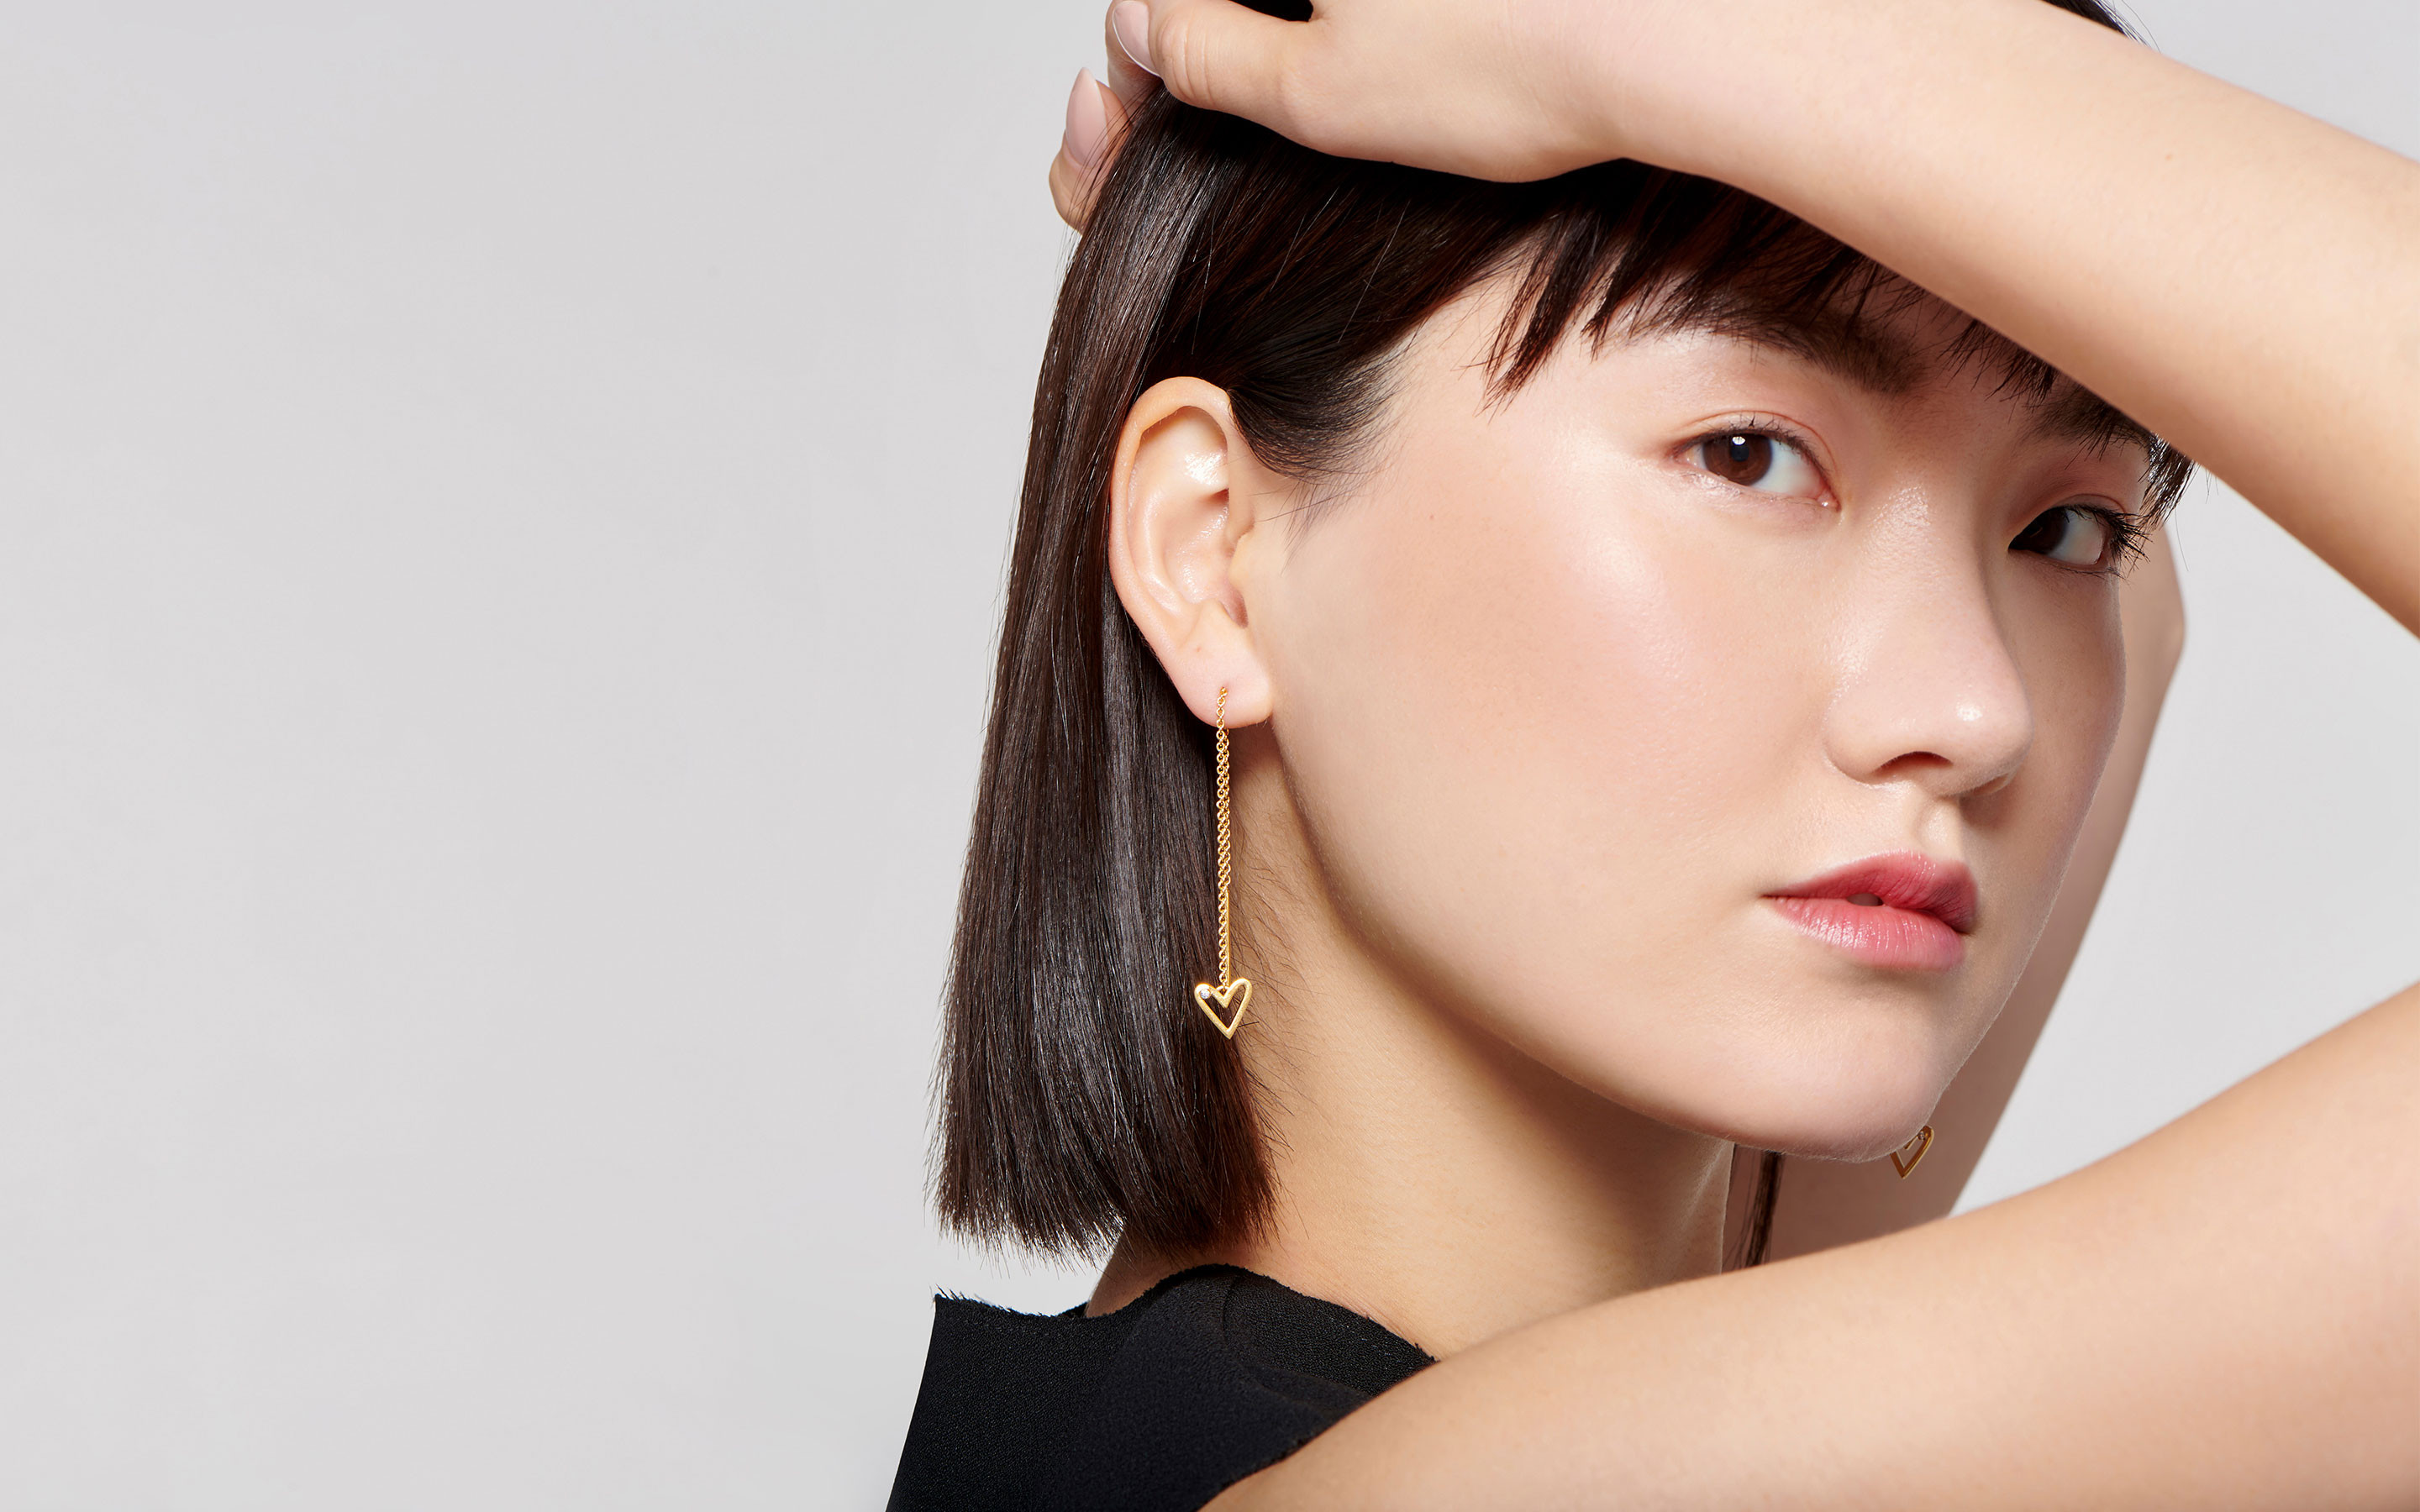 22 karat gold earrings in threader style with diamonds worn by attractive East Asian model in profile shot